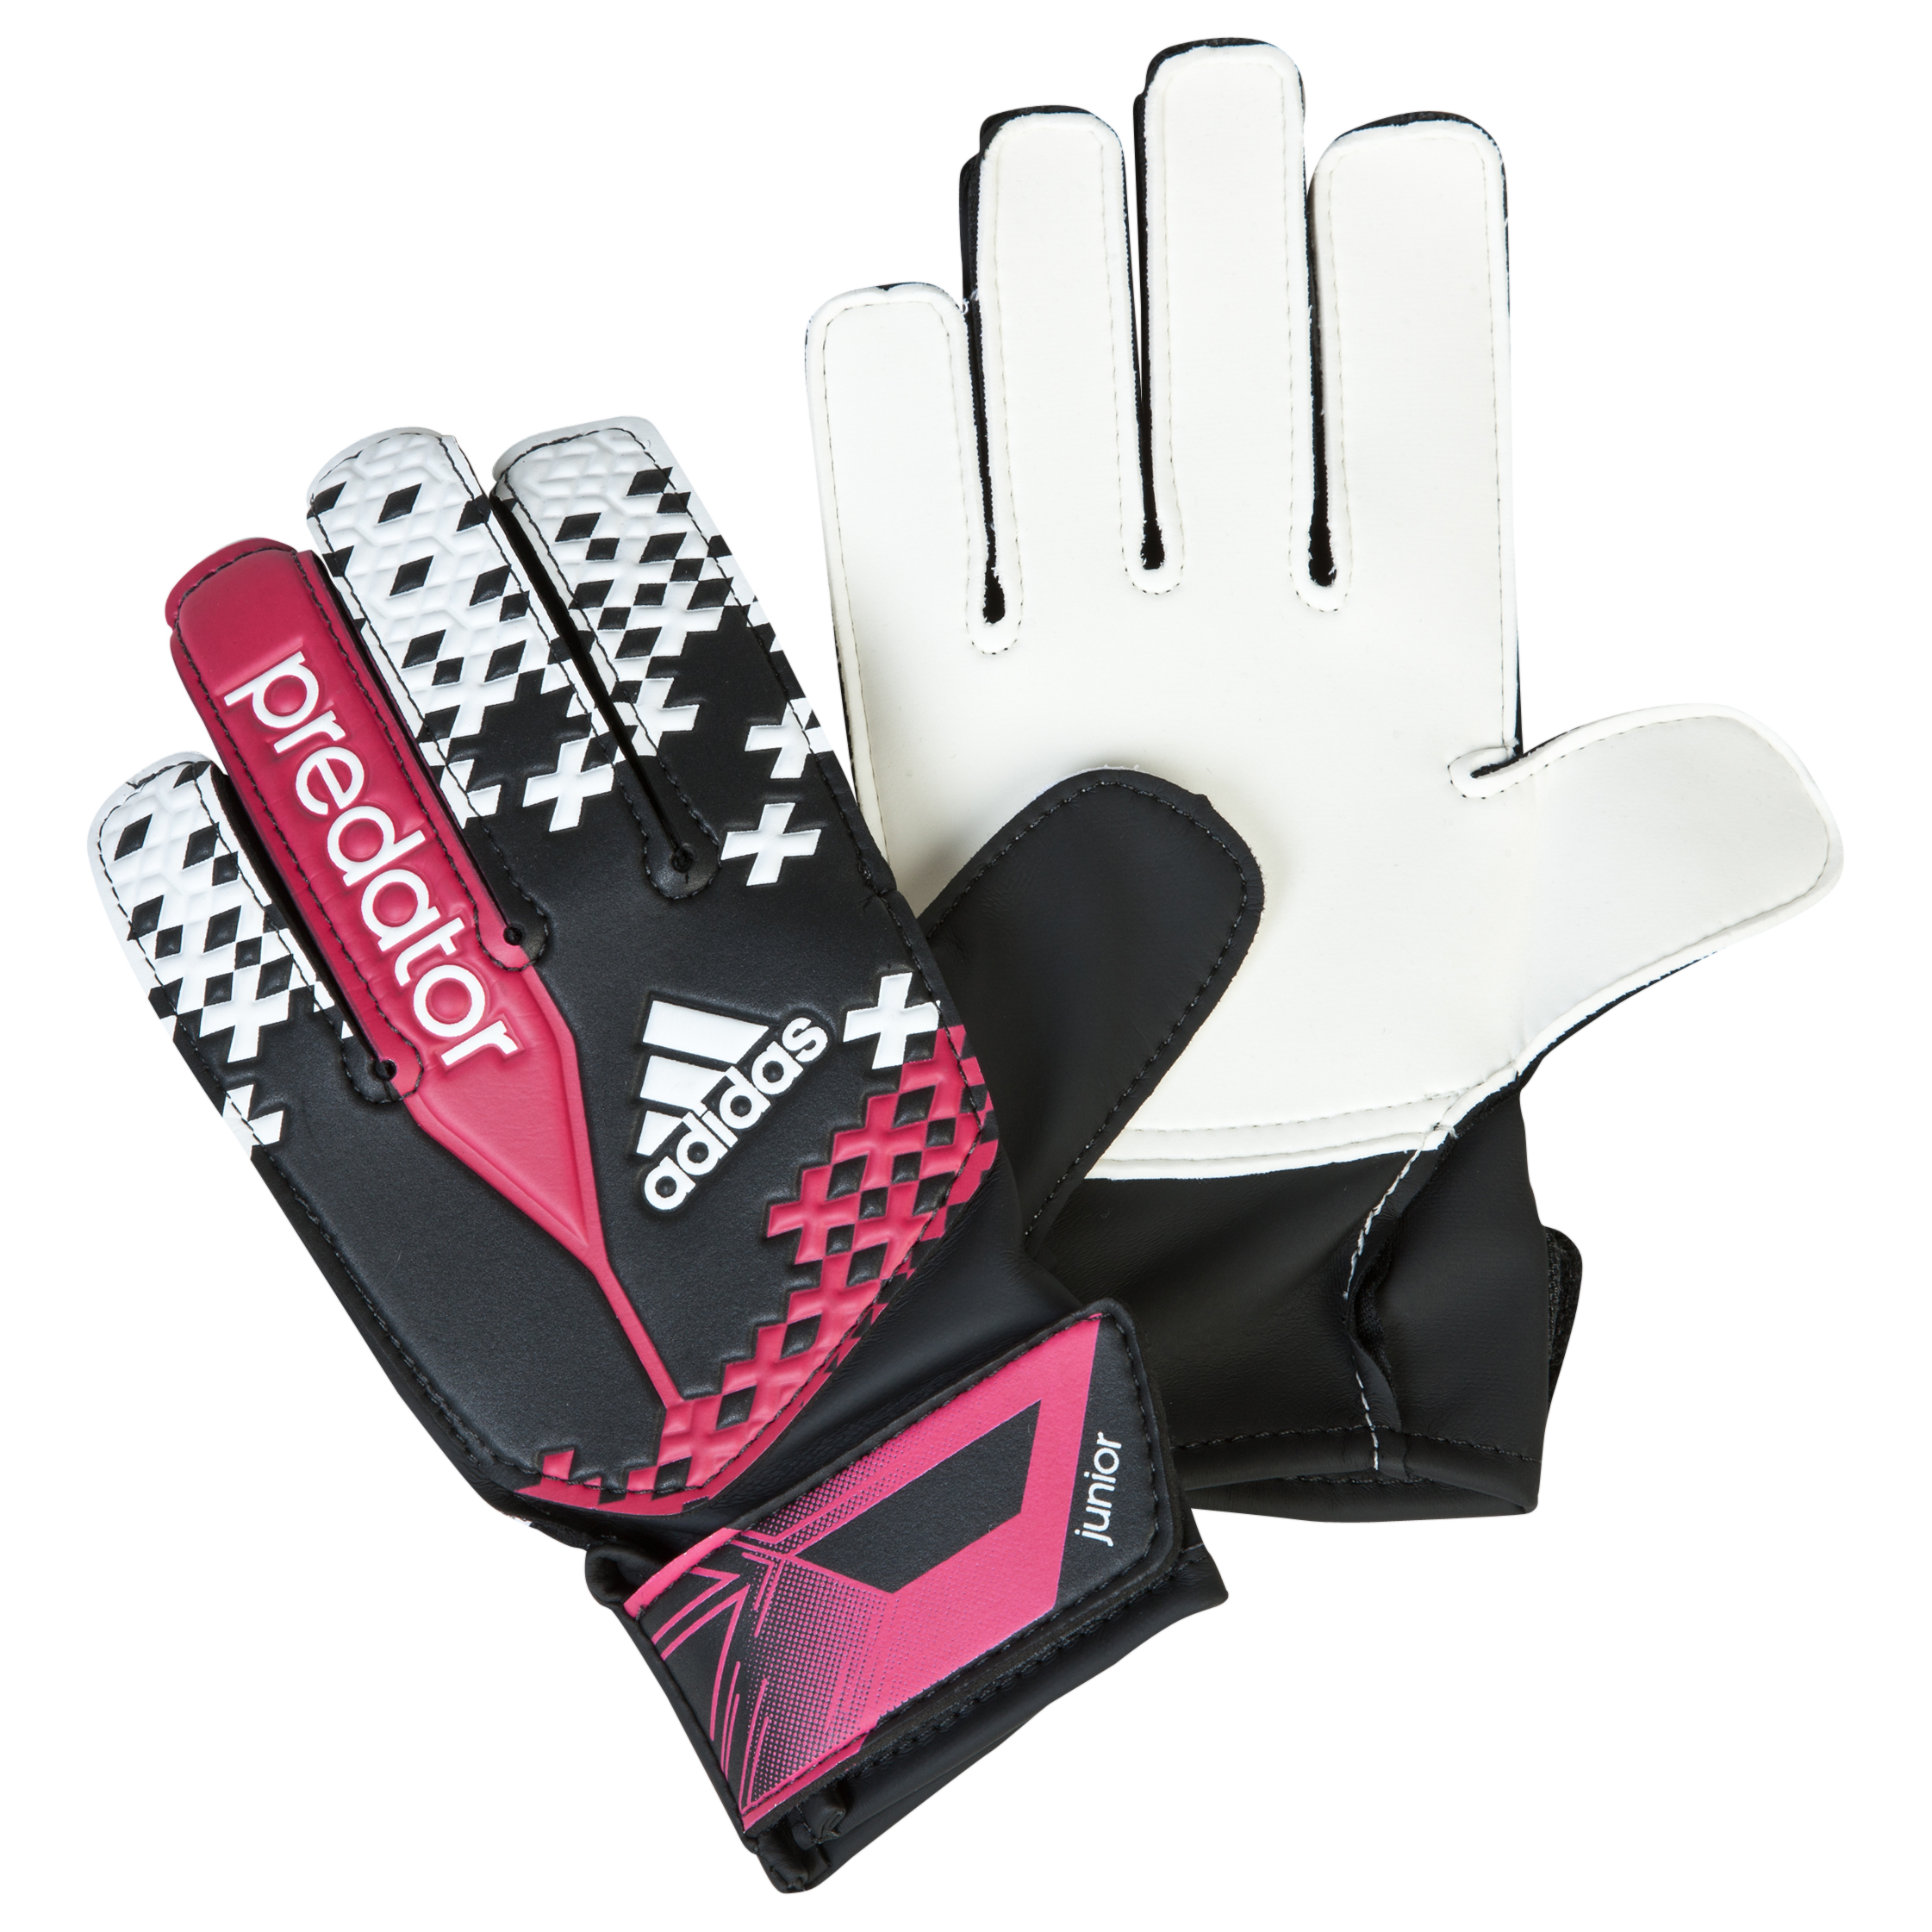 Adidas Predator Goalkeeper Gloves - Kids Black